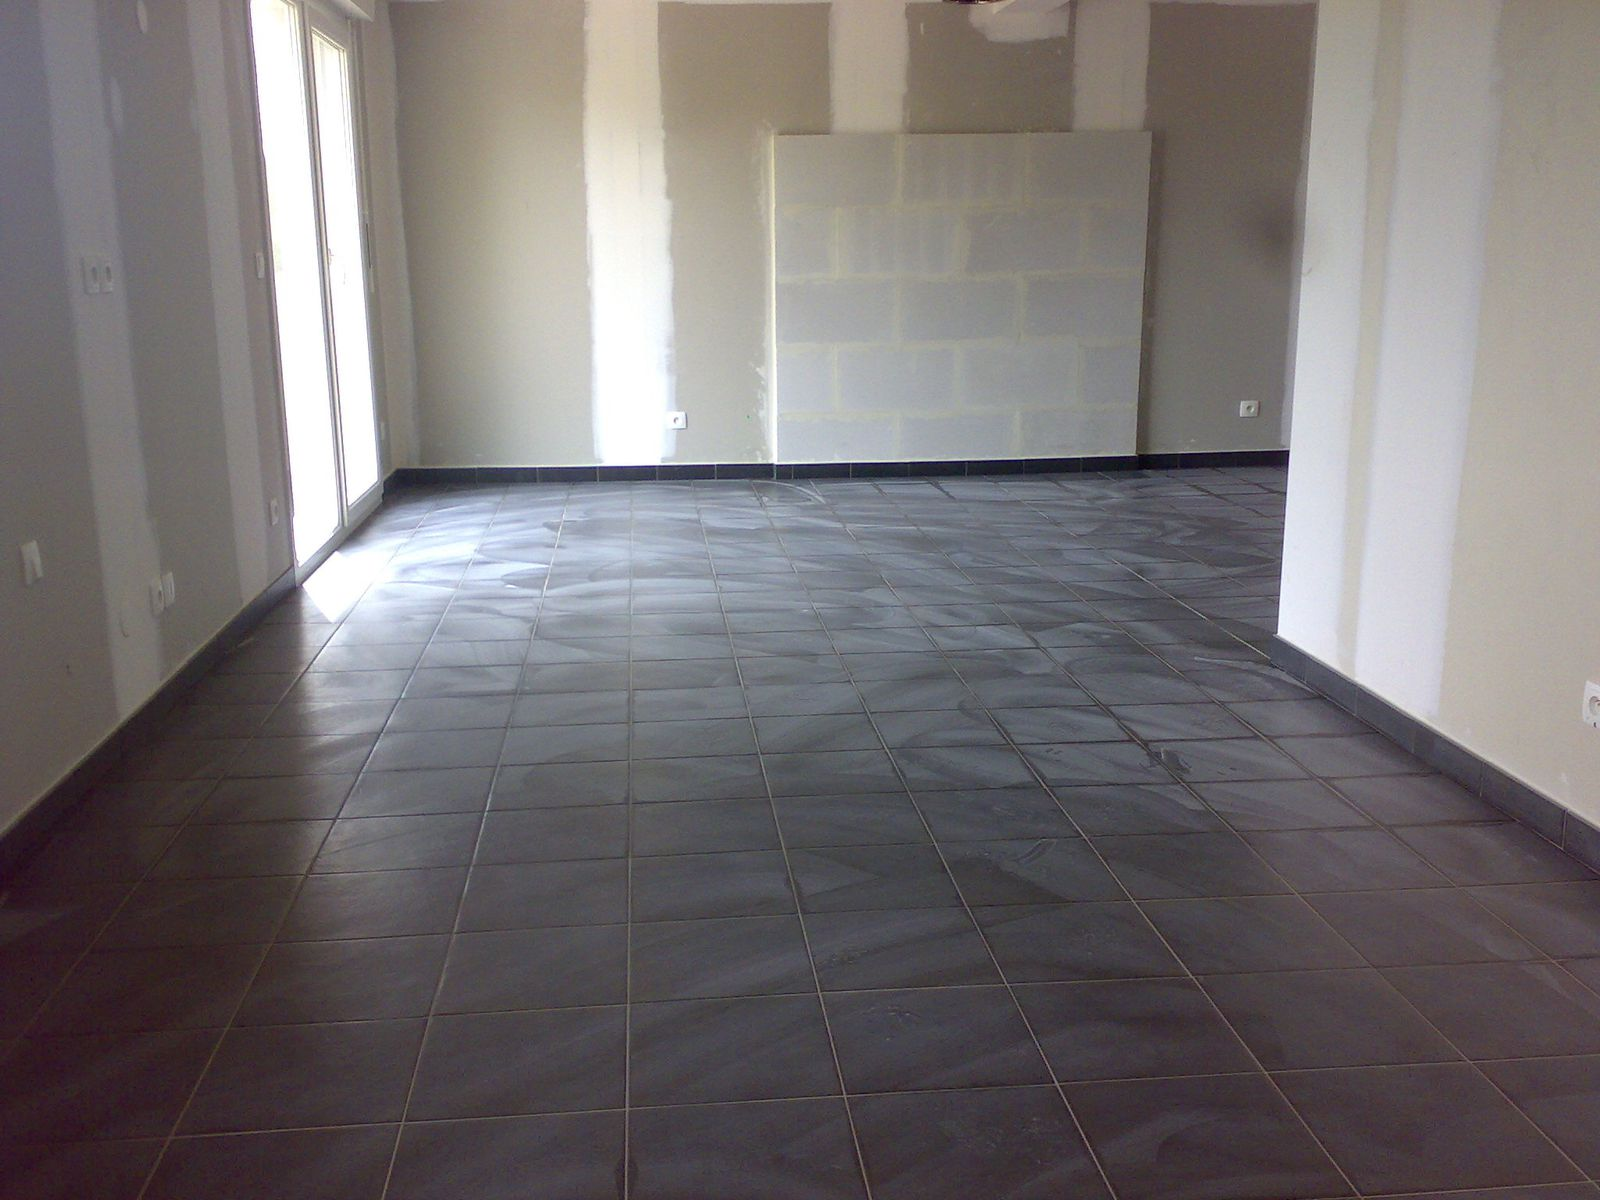 Carrelage termin construction maison batig re for Comment carreler sur du carrelage